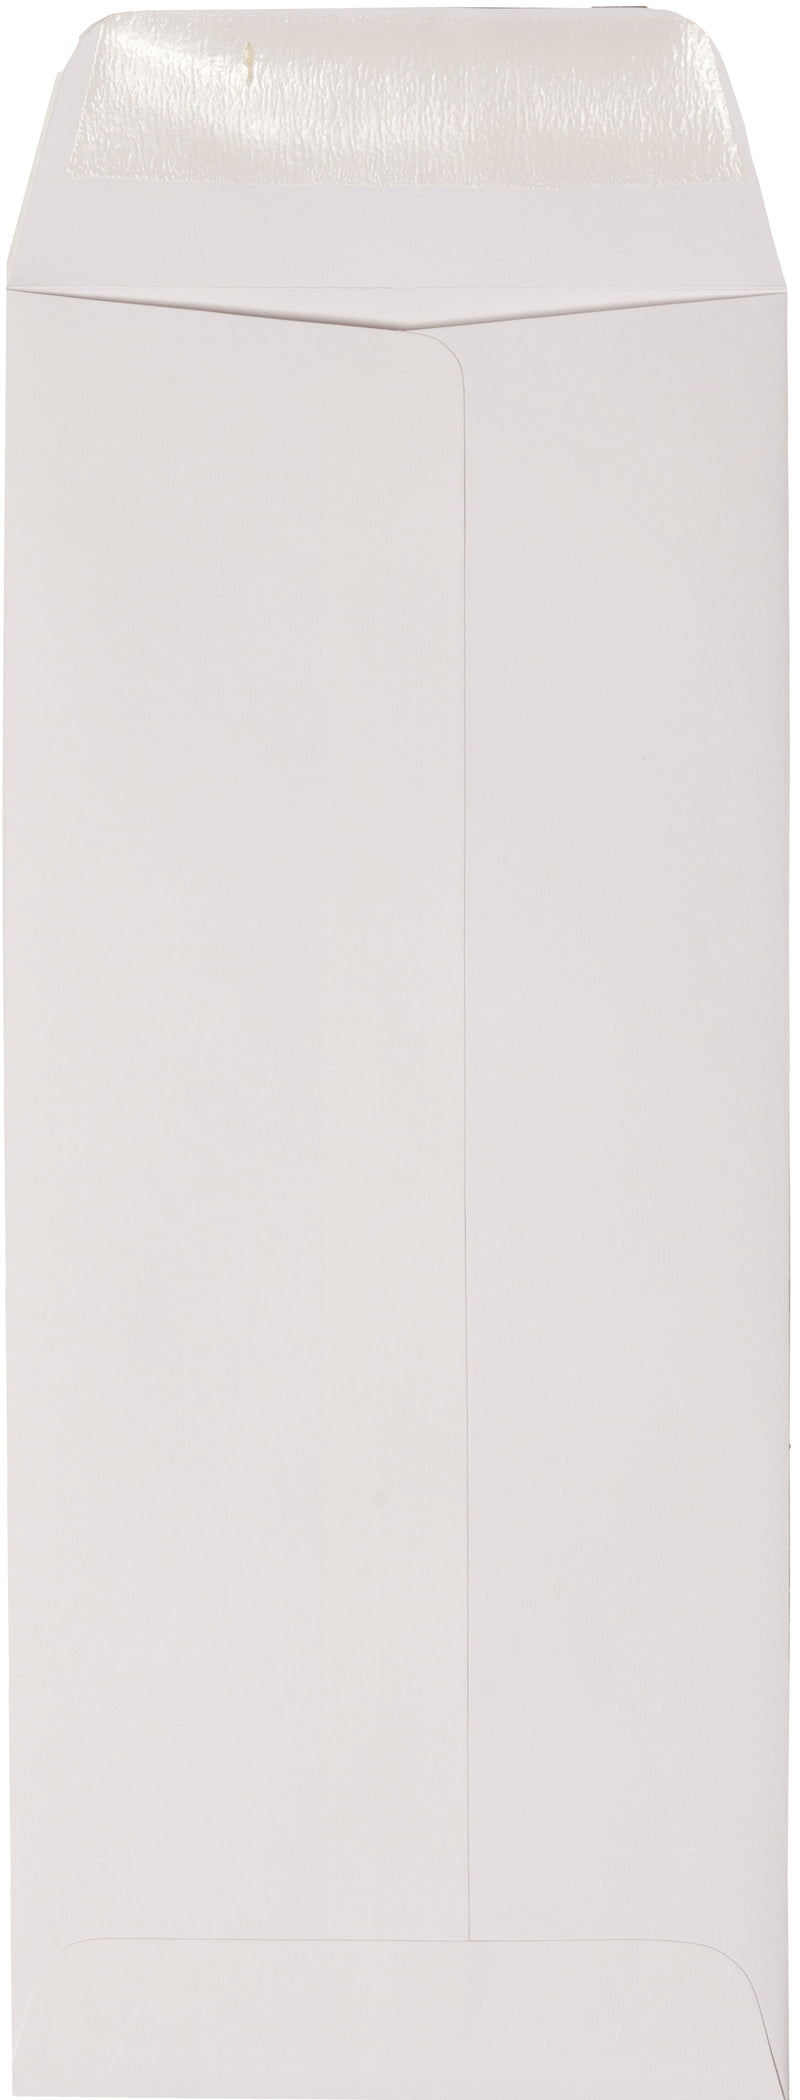 products/no10_policy_classic_white_solid_envelopes_open-0689.jpg